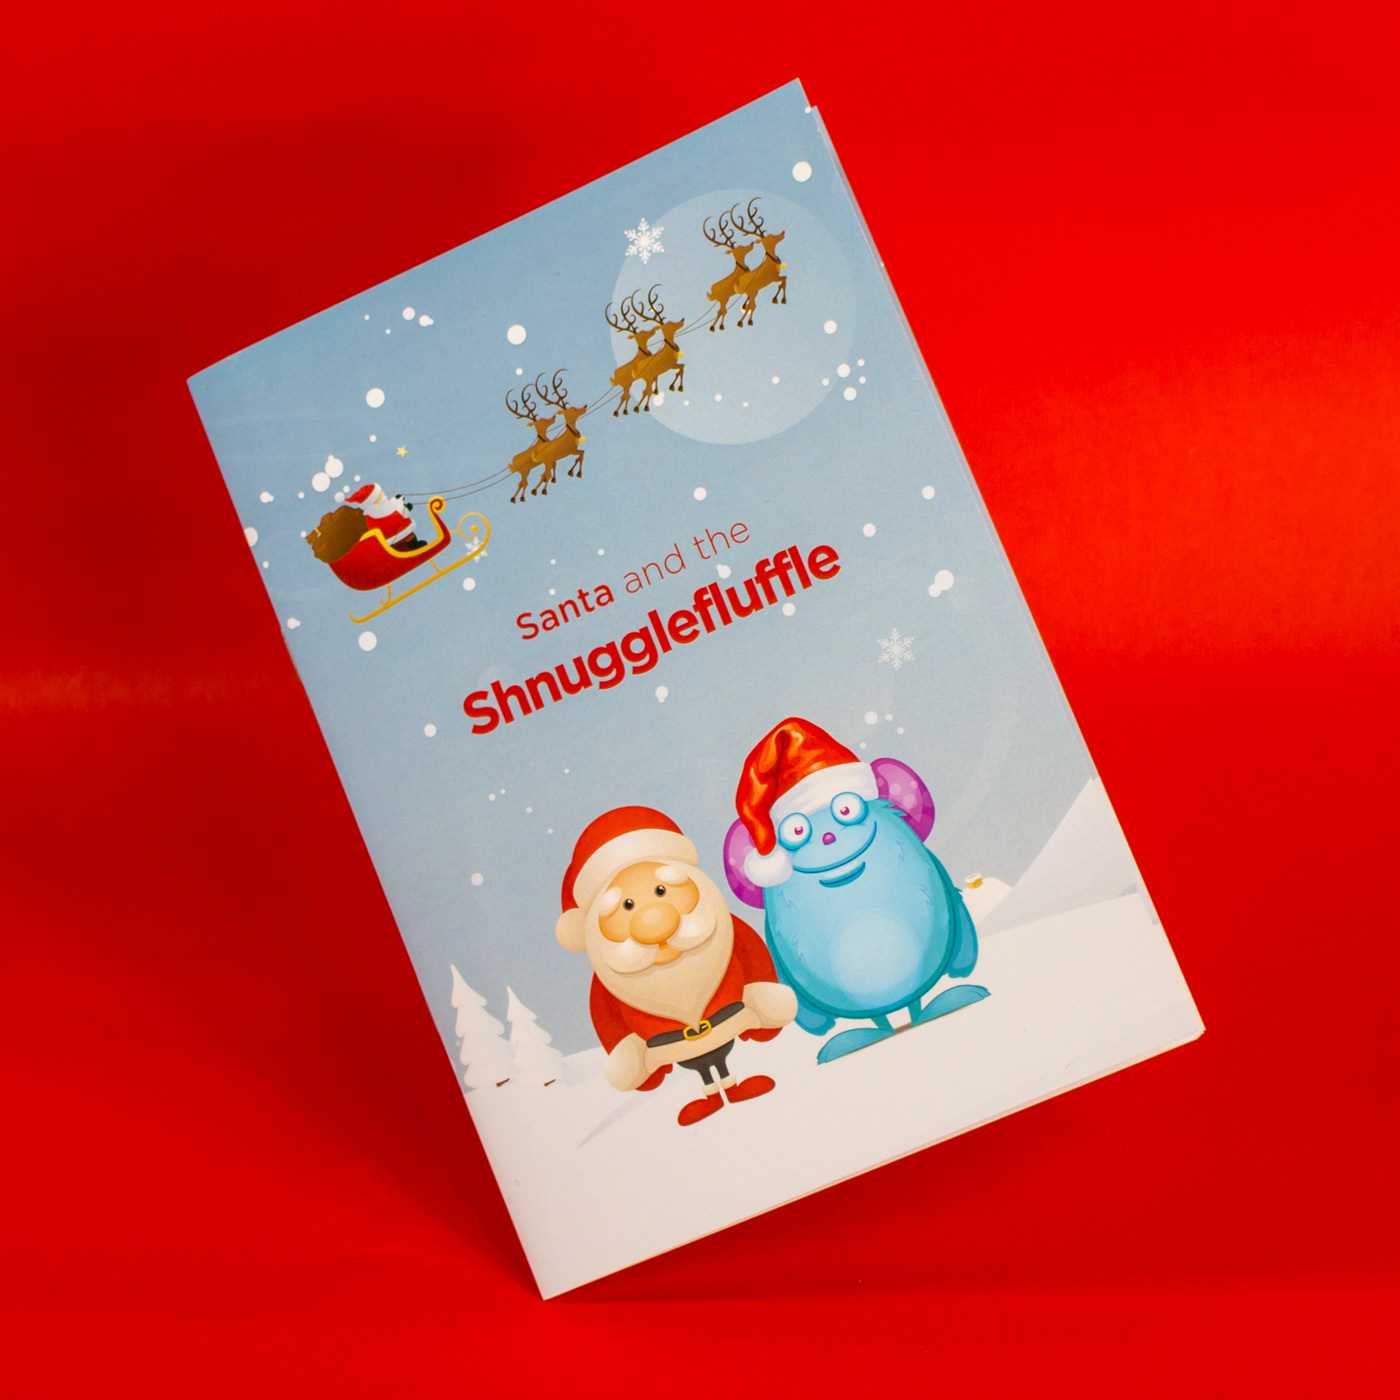 santa-and-the-shnugglefluffle-book-images-2